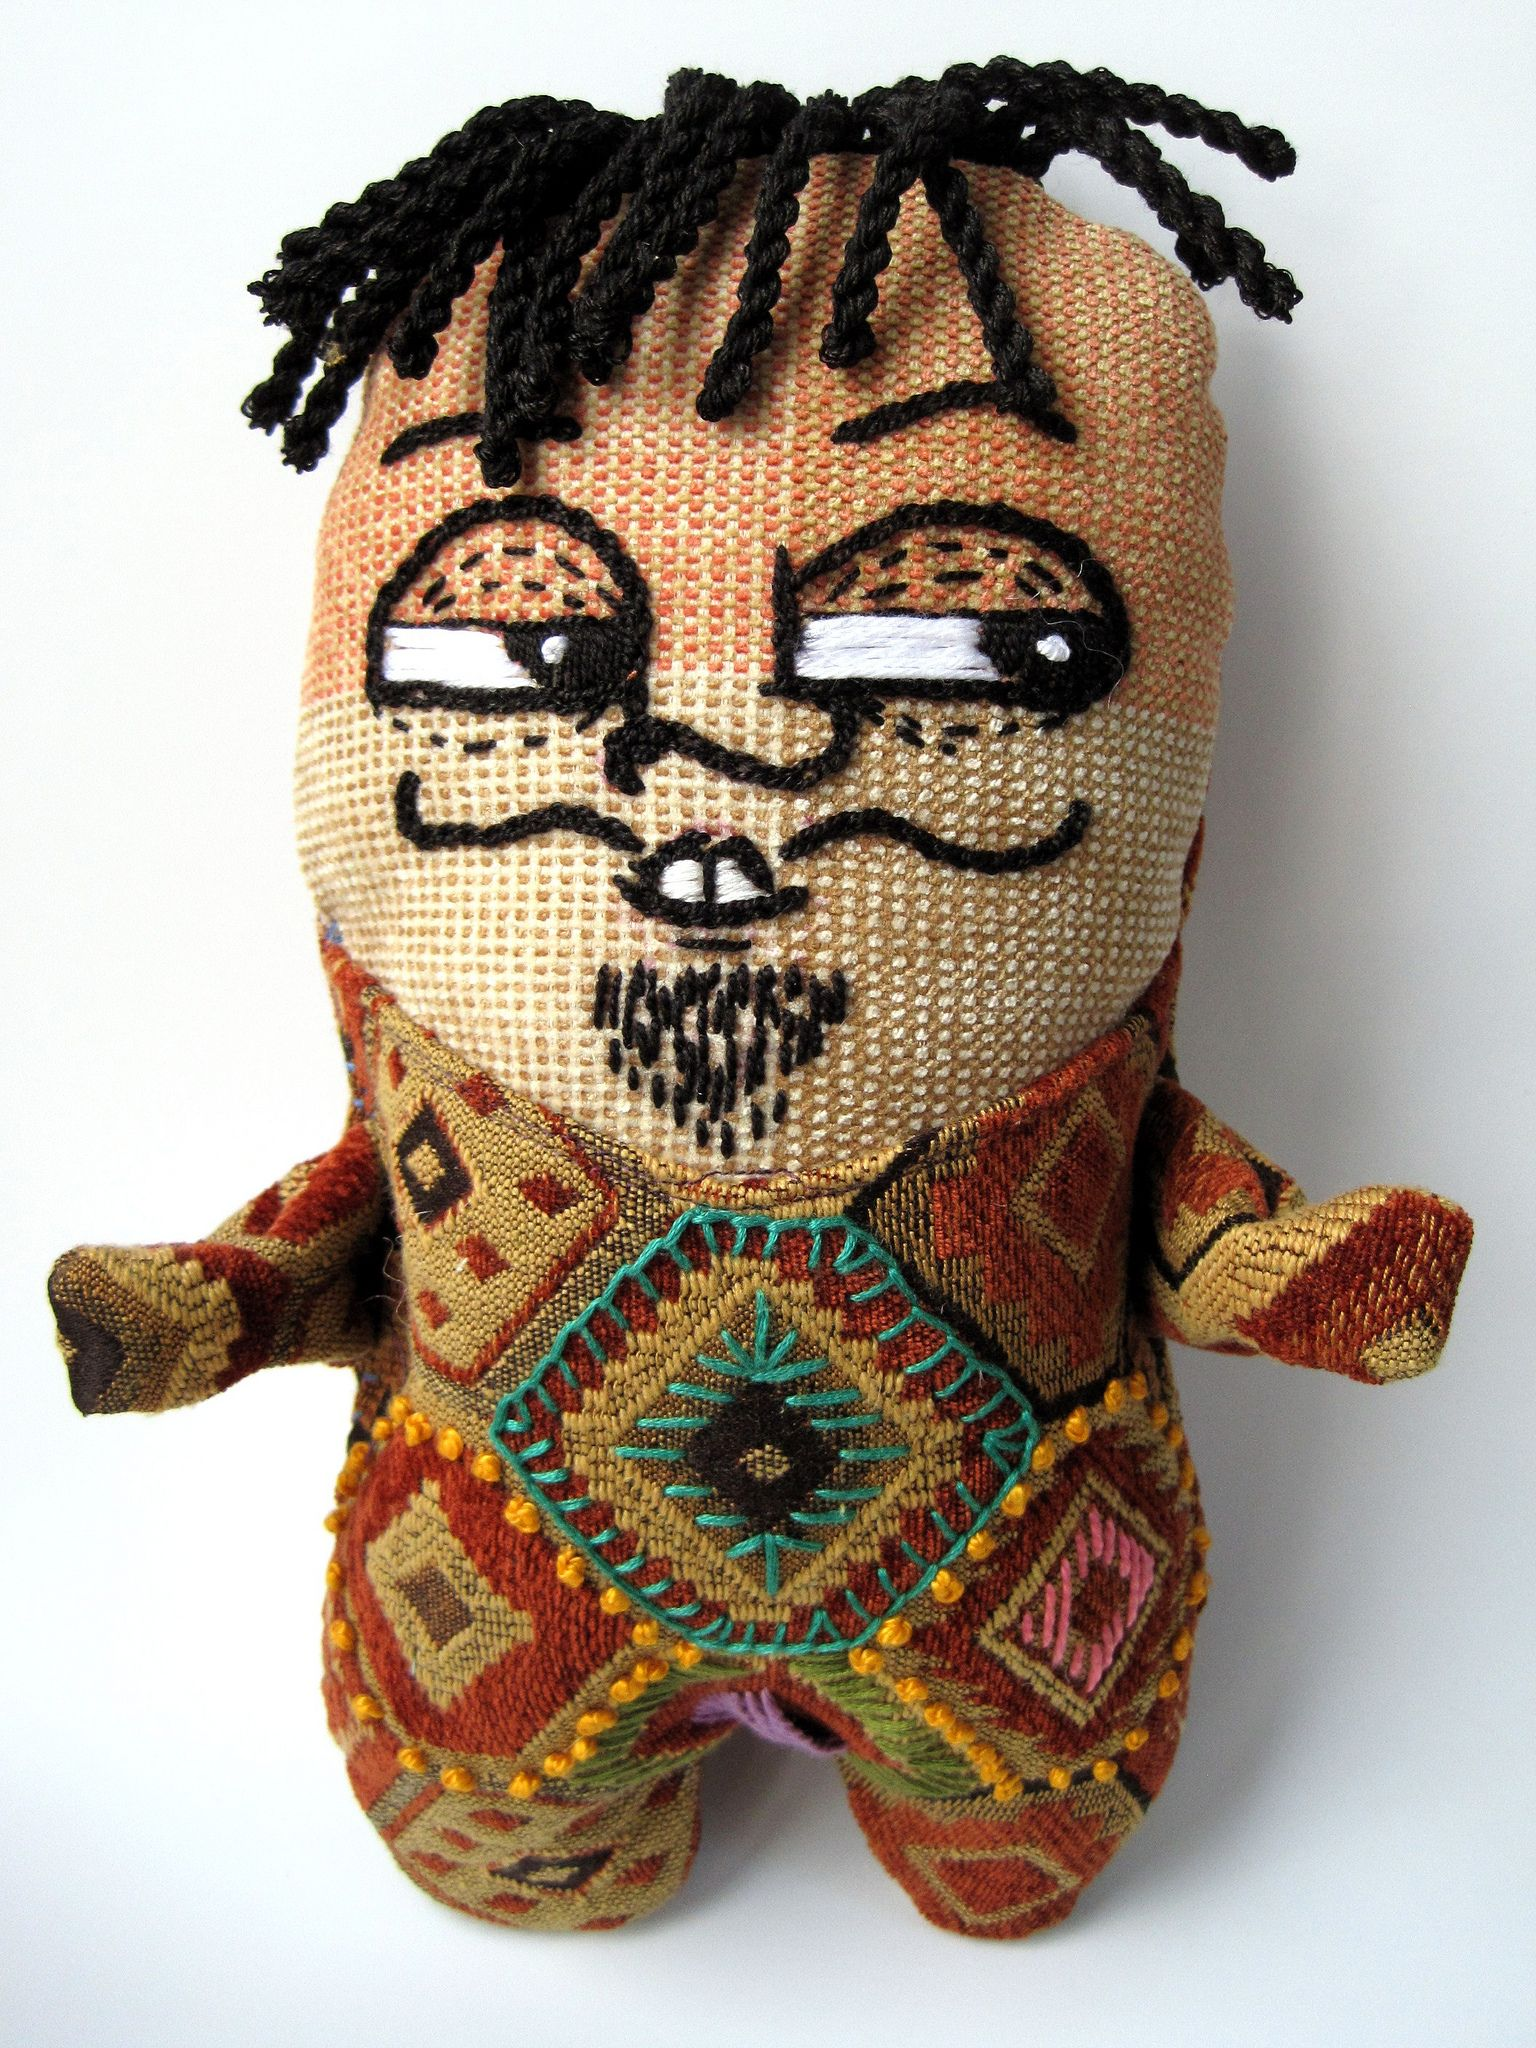 how to make a voodoo doll without sewing that works